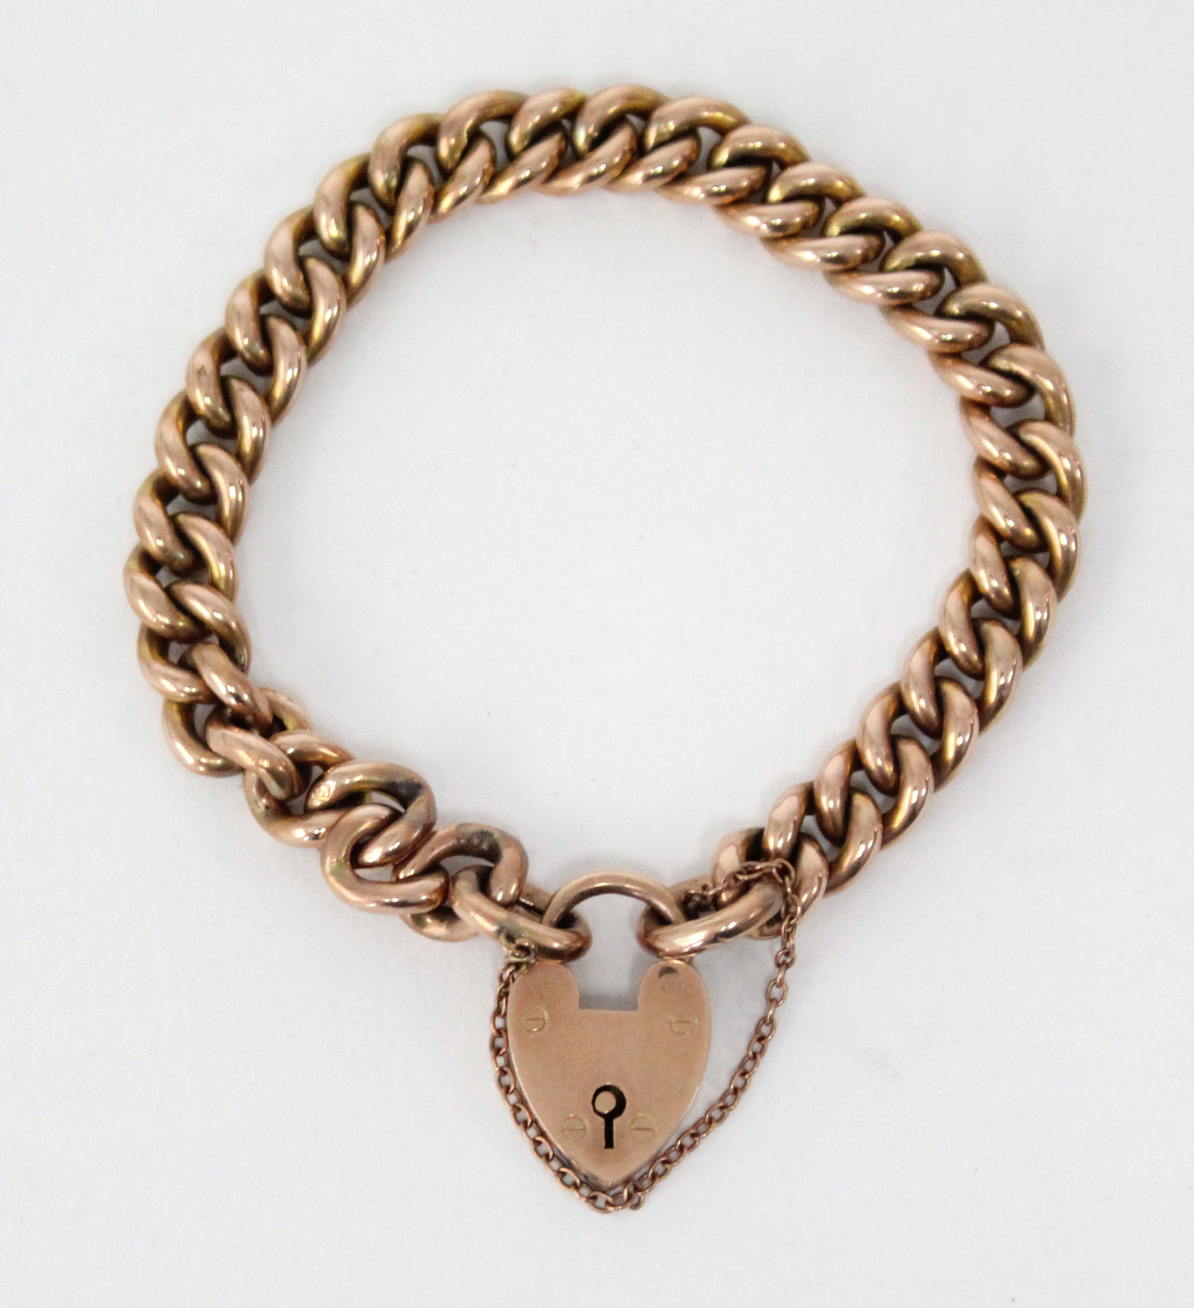 Lot 38 - A 9ct. gold bracelet of hollow curb links, with padlock clasp & safety chain. (17 gm)